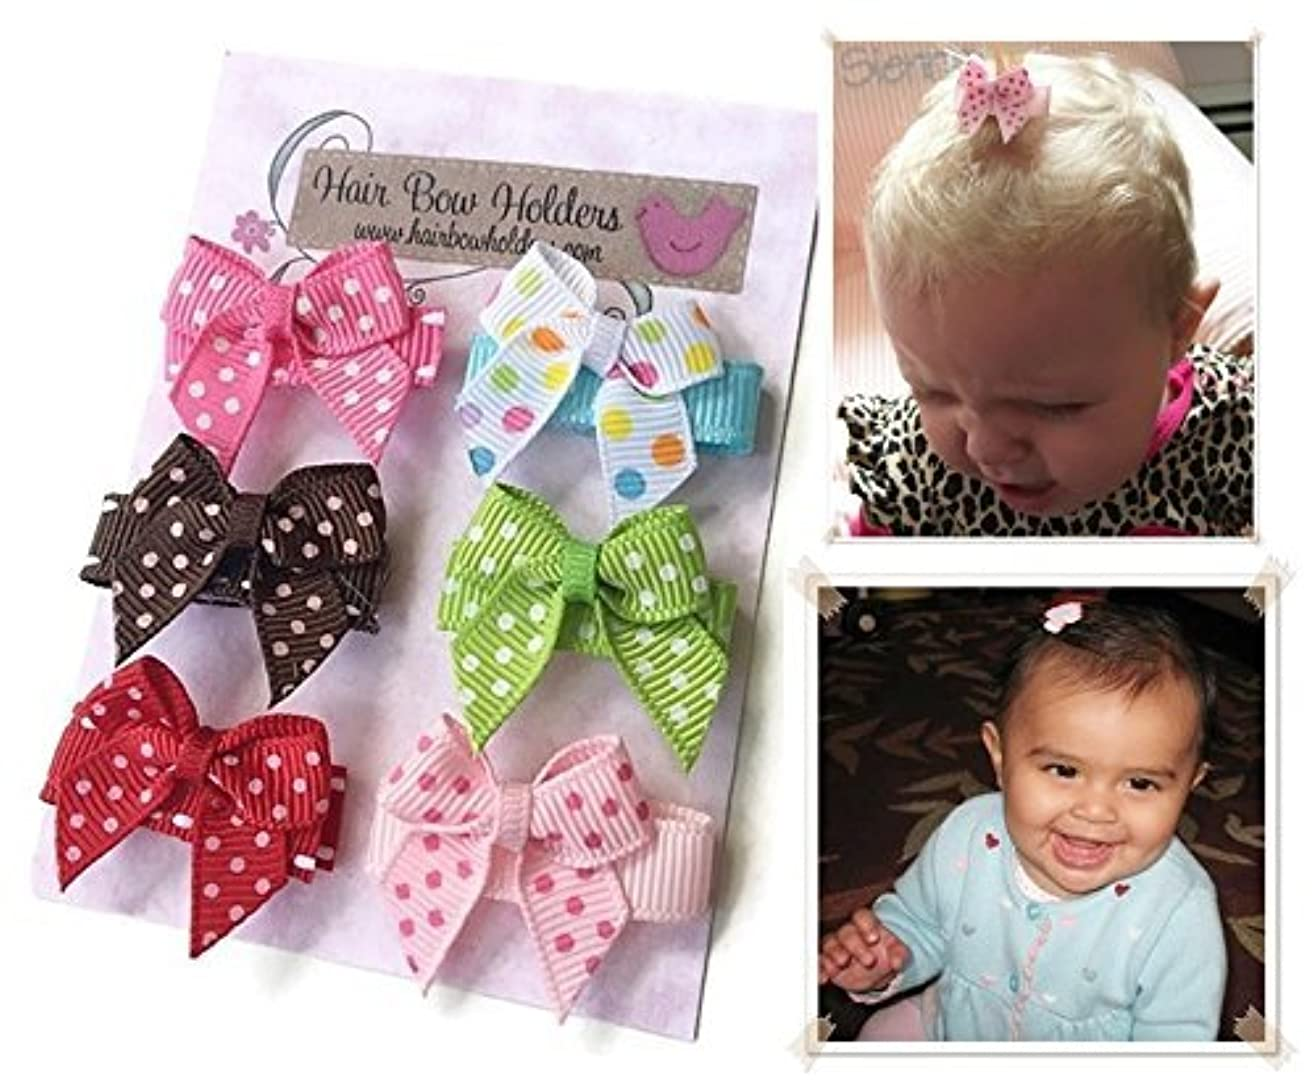 HAIR BOWS Made with VELCRO? brand fasteners for Baby Girl - BEST BABY SHOWER GIFT - Small Mini Traditional Hair bows Polka dots pink brown red green colorful HairBows for Newborns